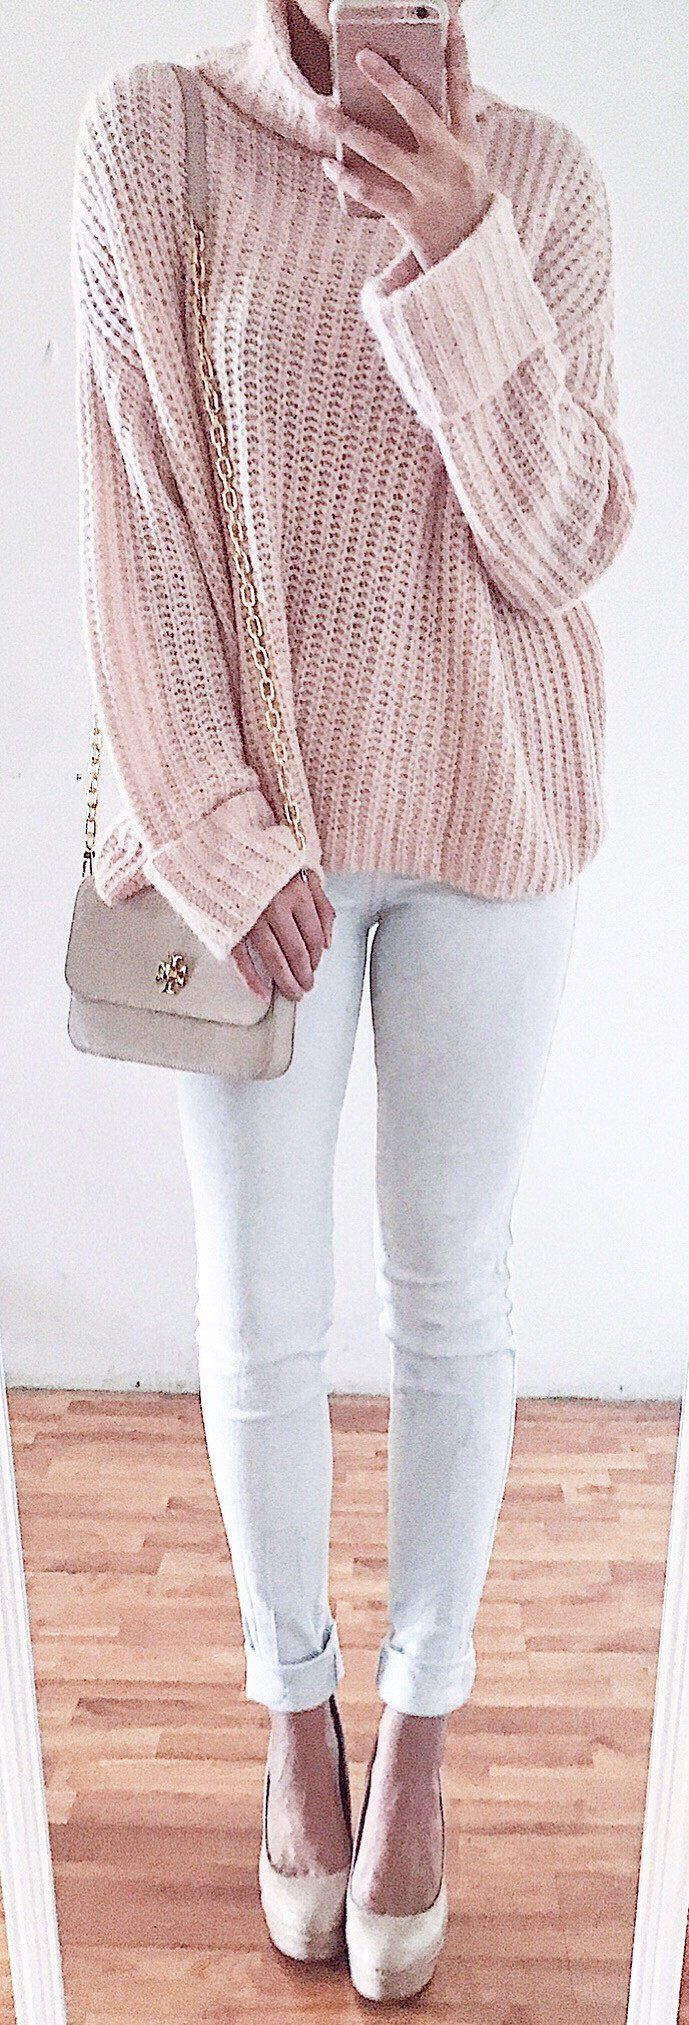 #spring #fashion /  Pink Turtleneck Knit / White Skinny Jeans / Beige Pumps